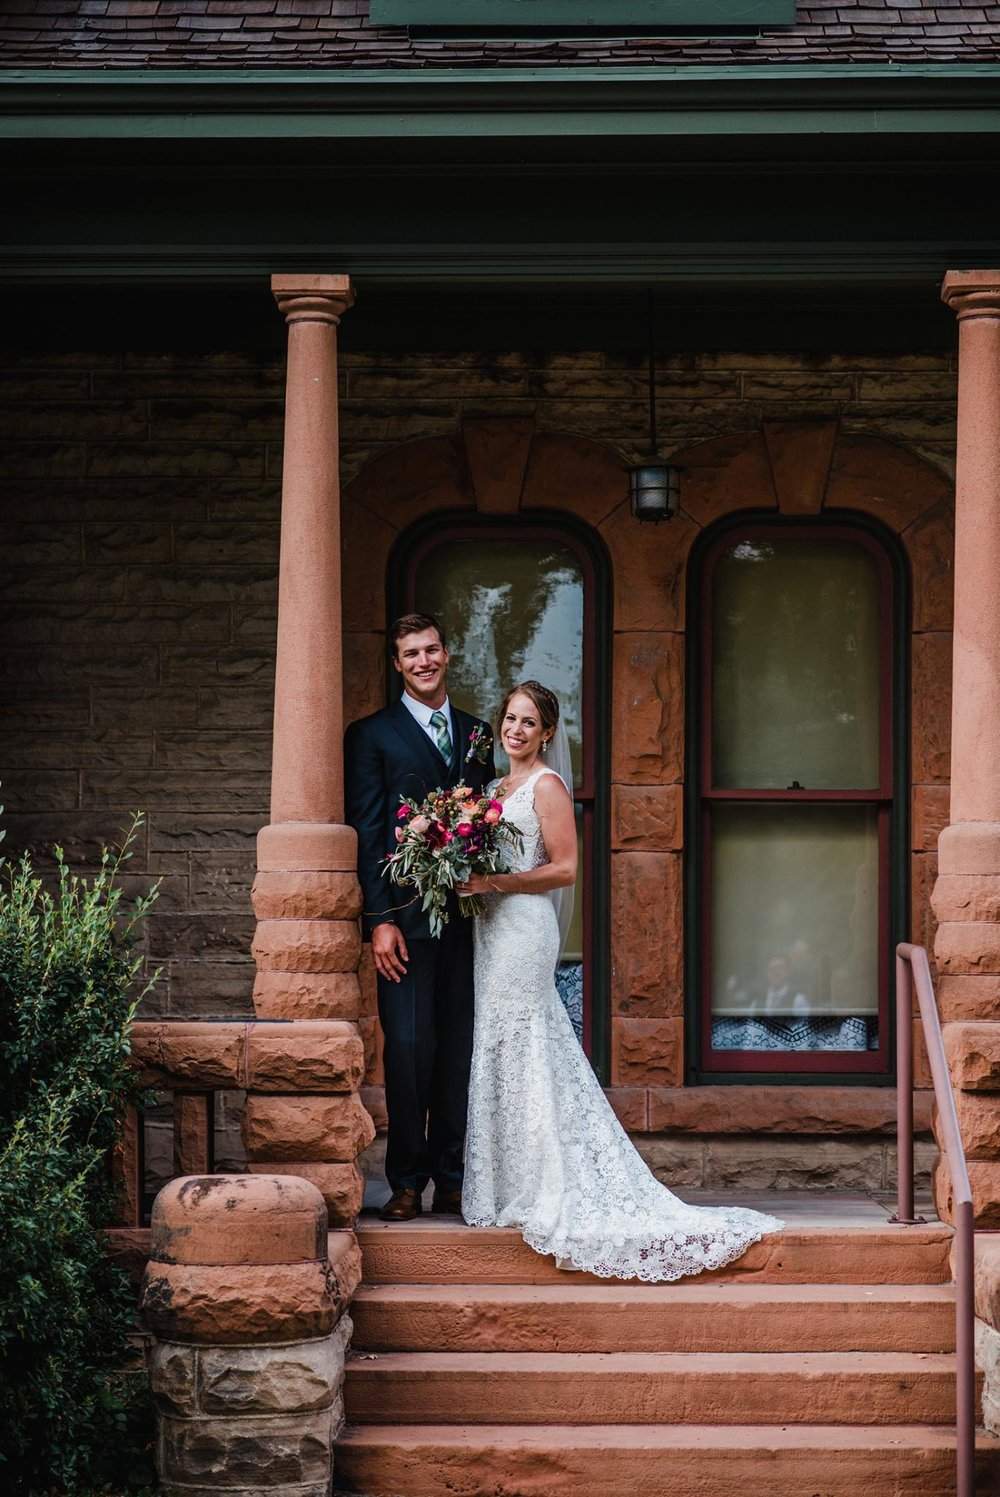 Weddings Special Events Poudre Landmarks Foundation